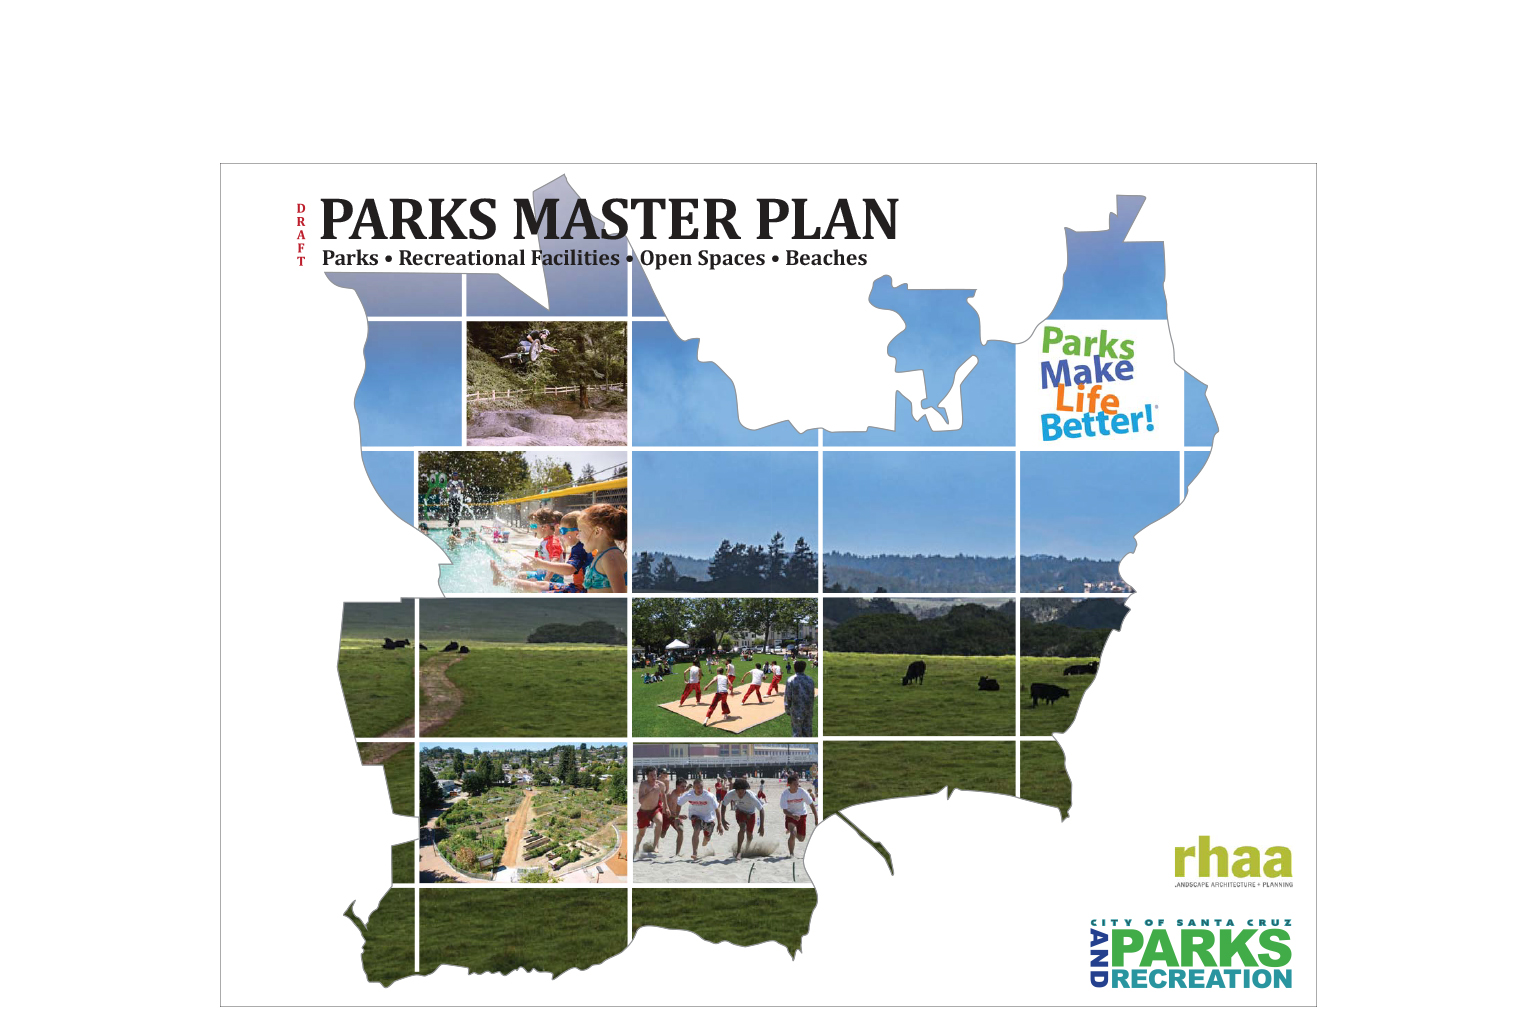 Santa Cruz 2030 Park and Recreation Master Plan